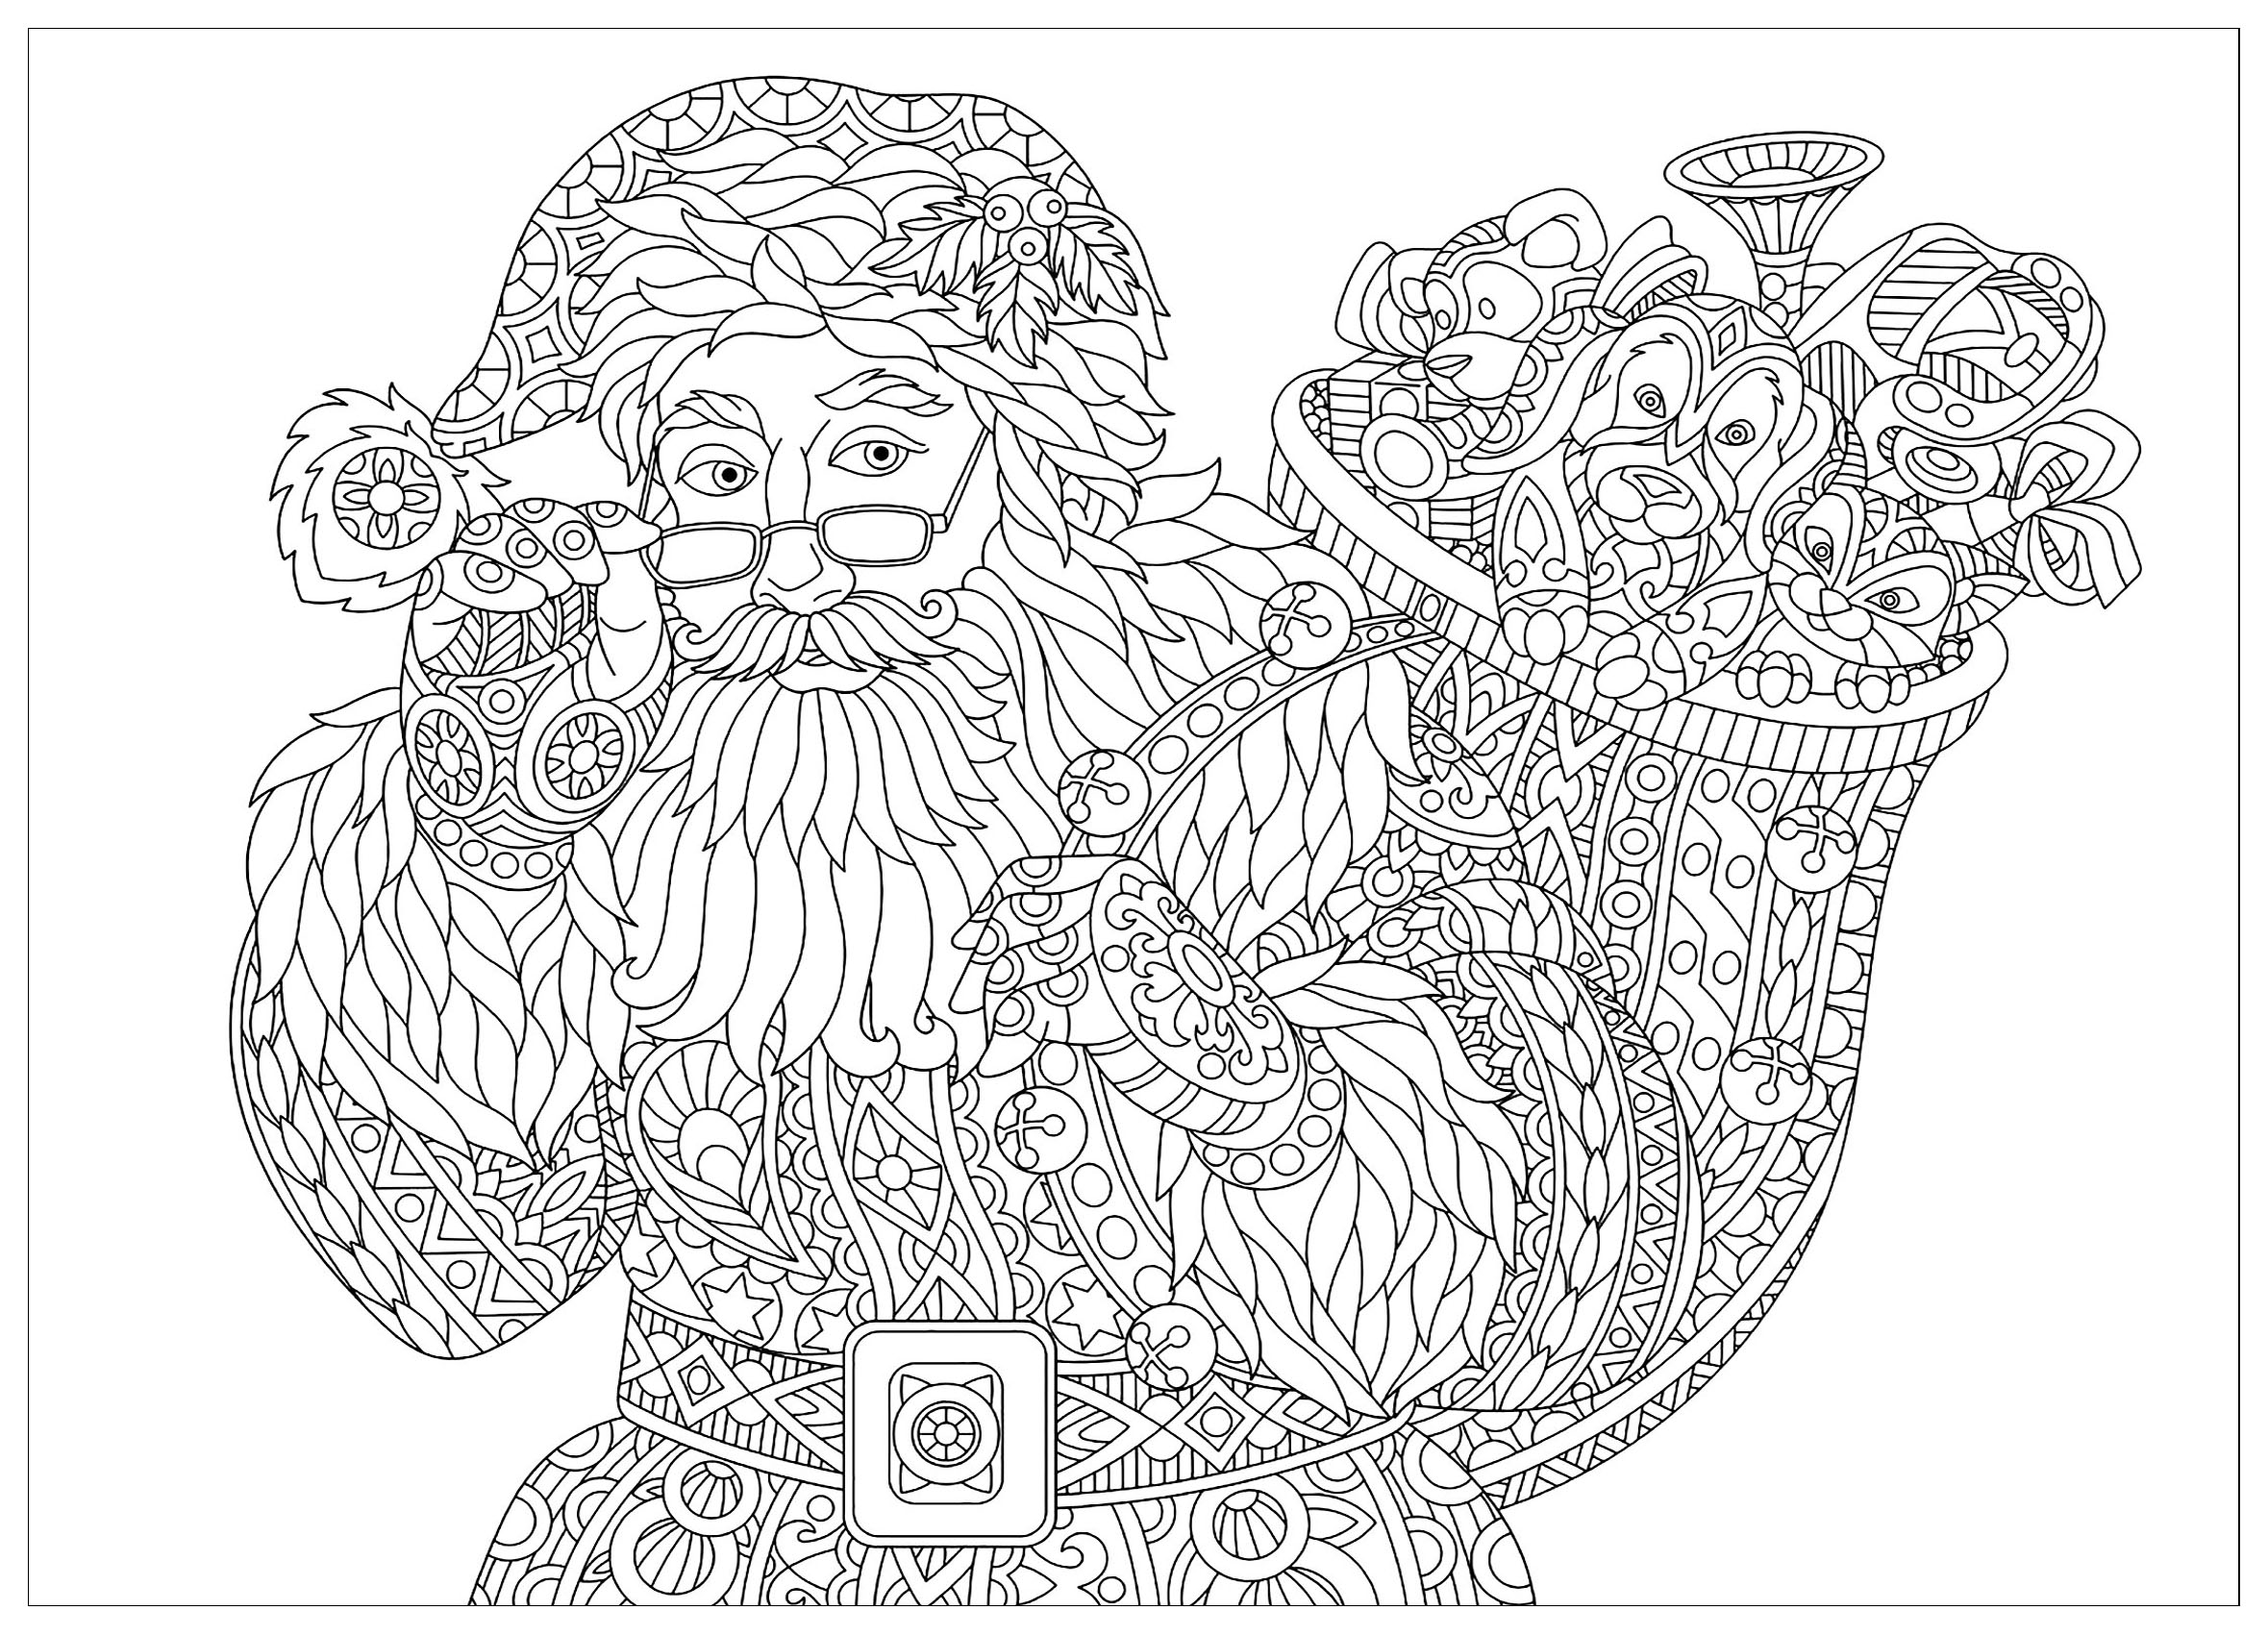 coloring page of santa claus with full bag of holiday gifts and christmas vintage snowflakes in background